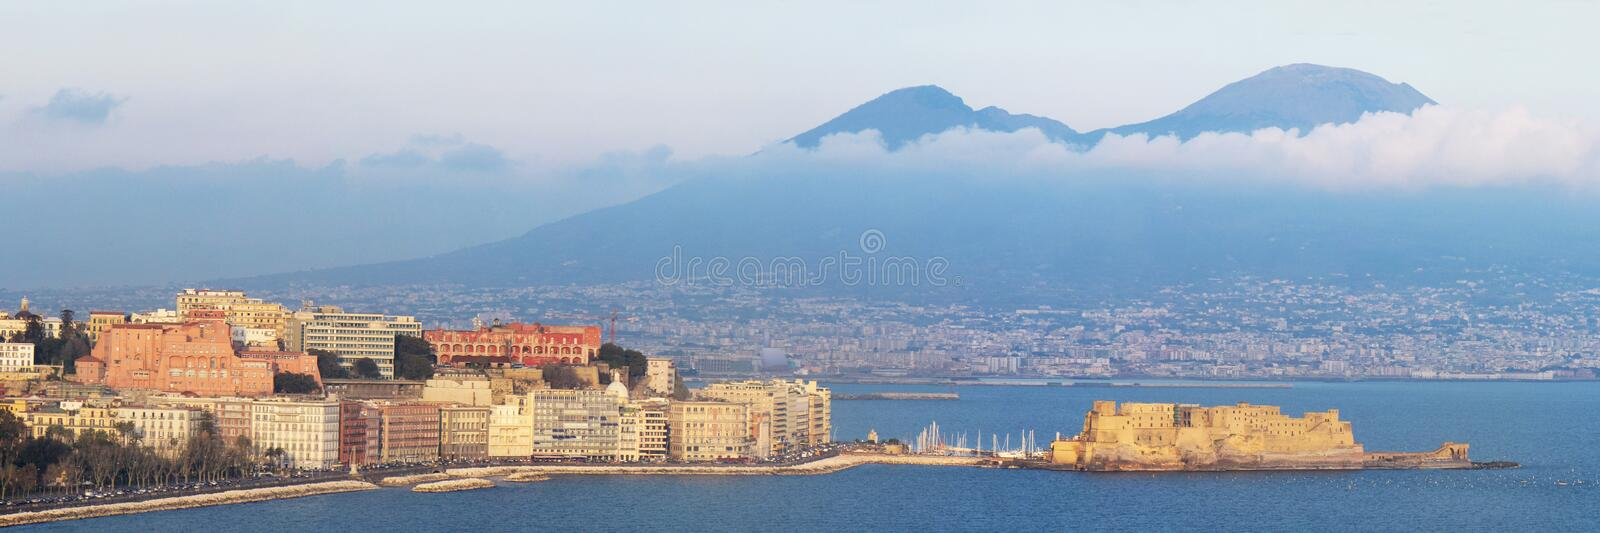 Naples gulf royalty free stock photography